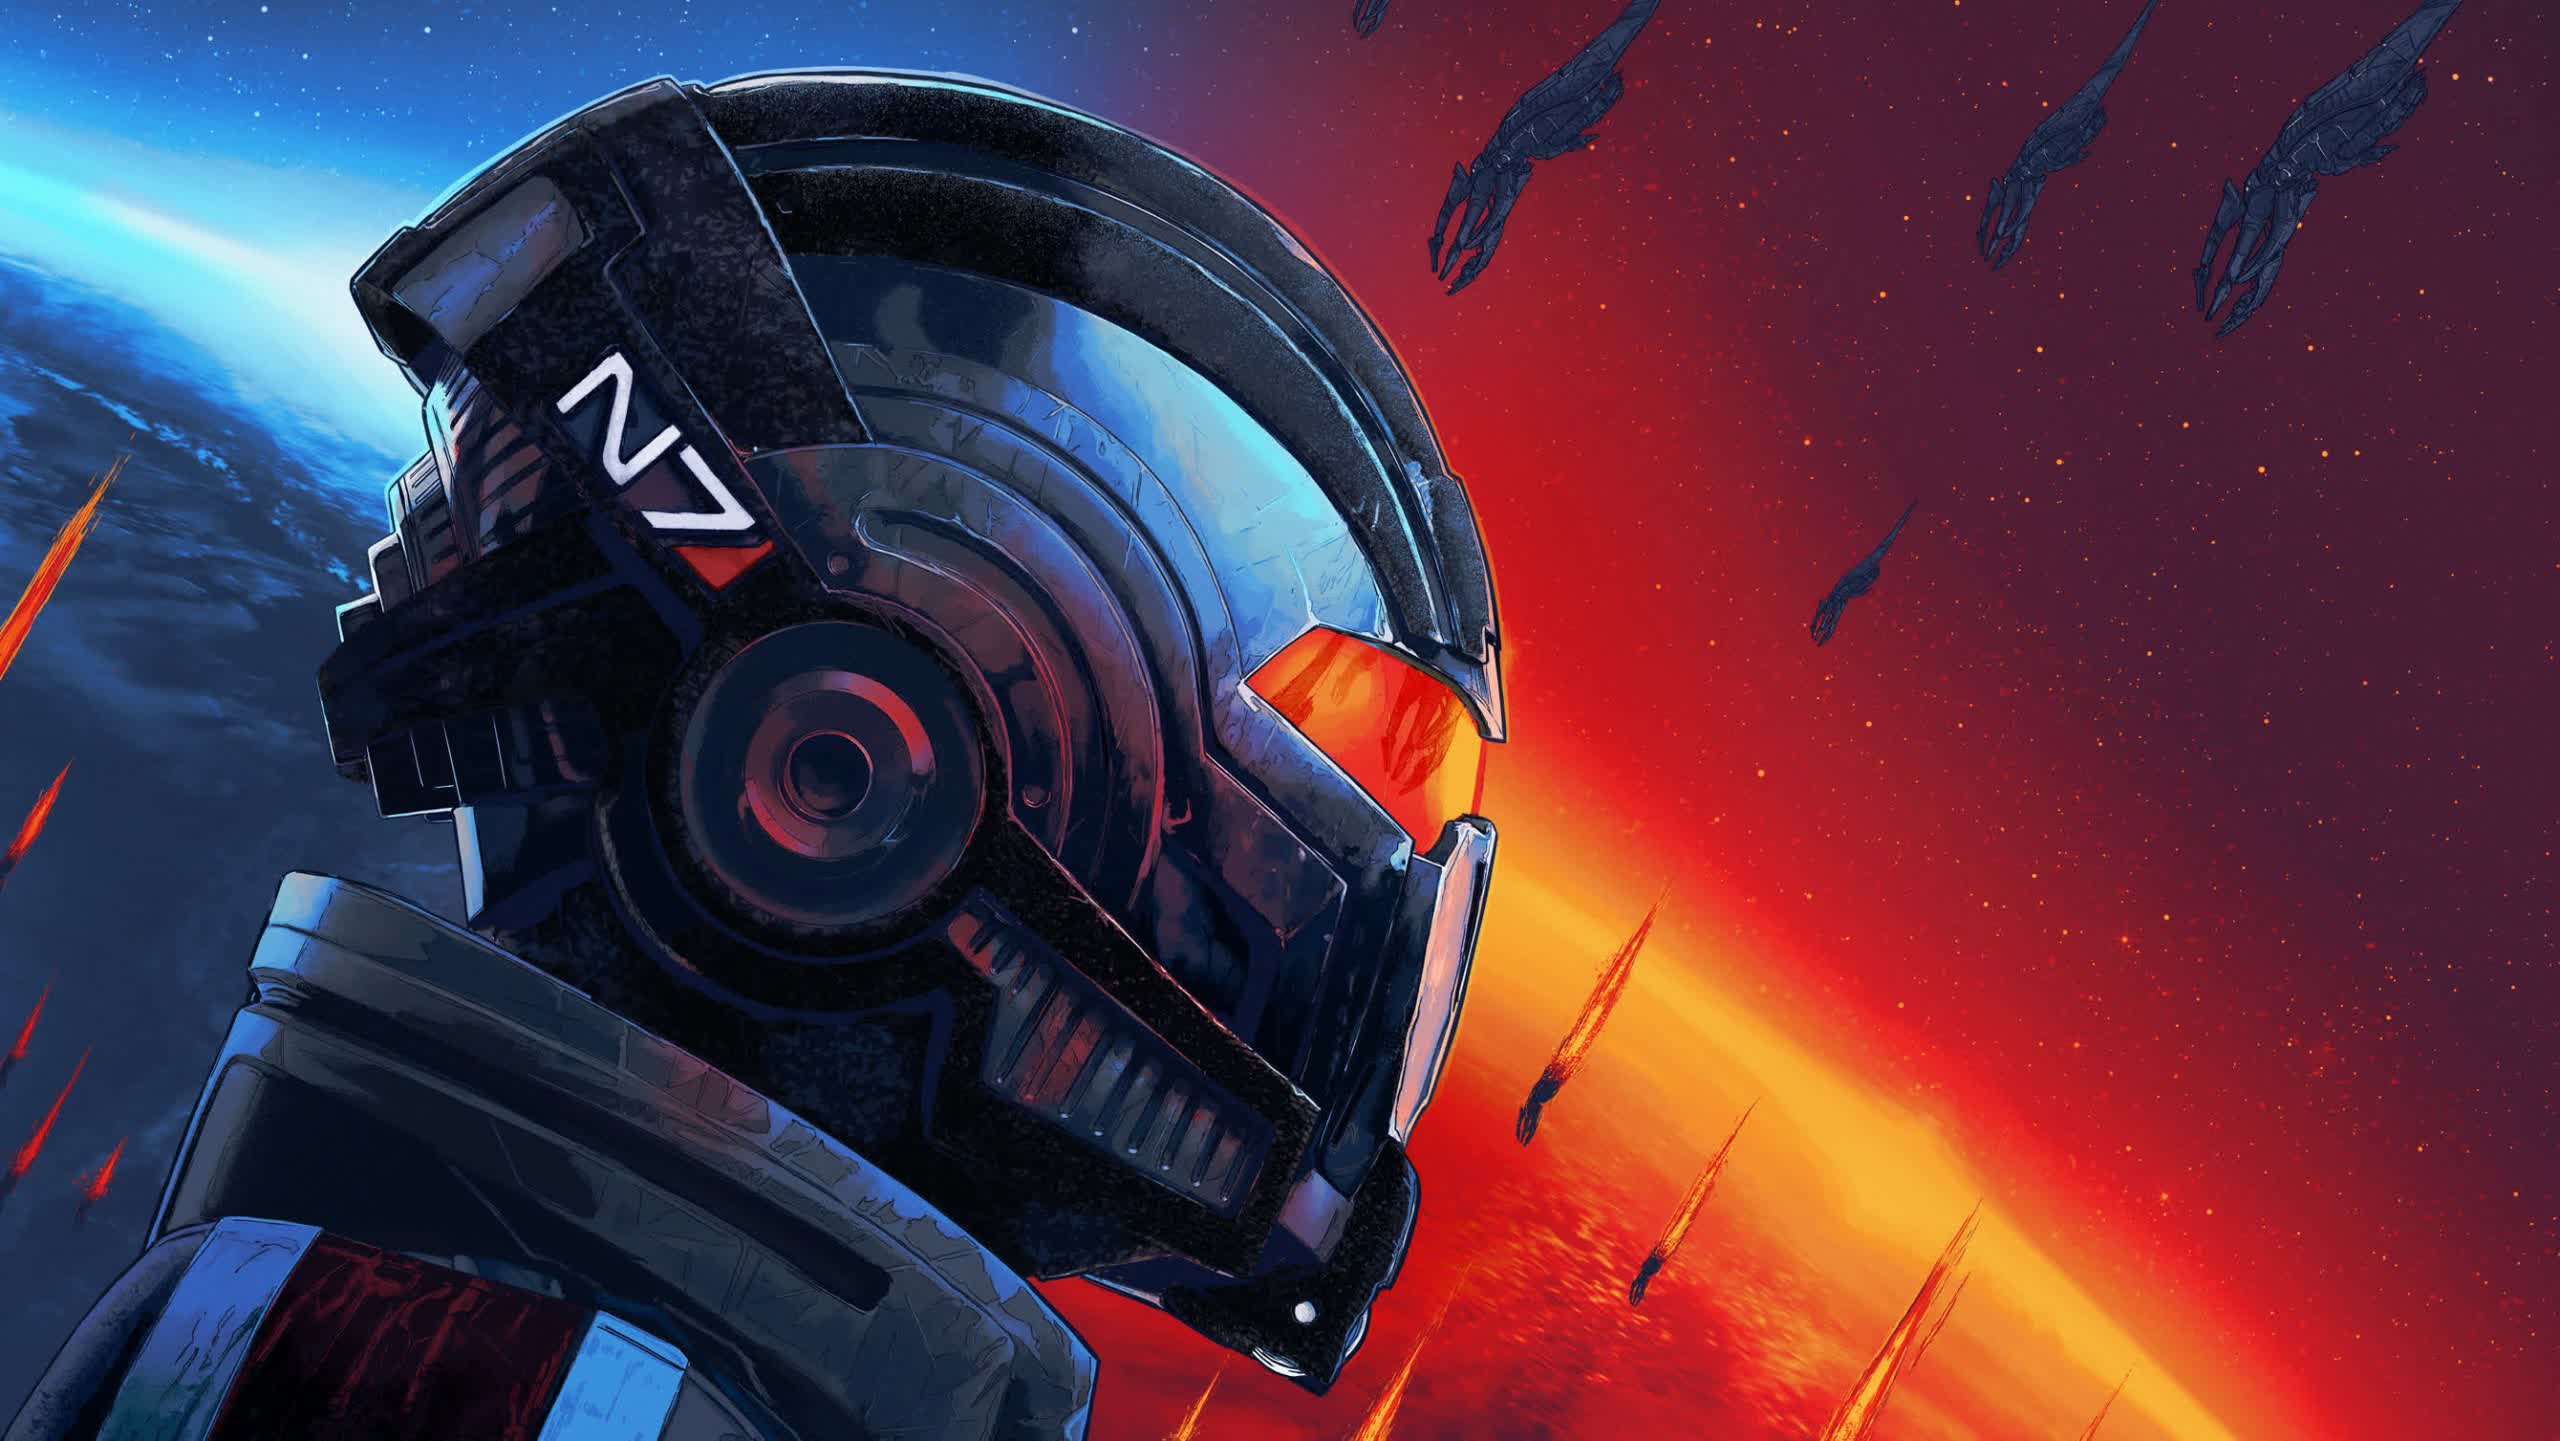 Mass Effect was too big for the 'big screen,' but director says it's just right for TV